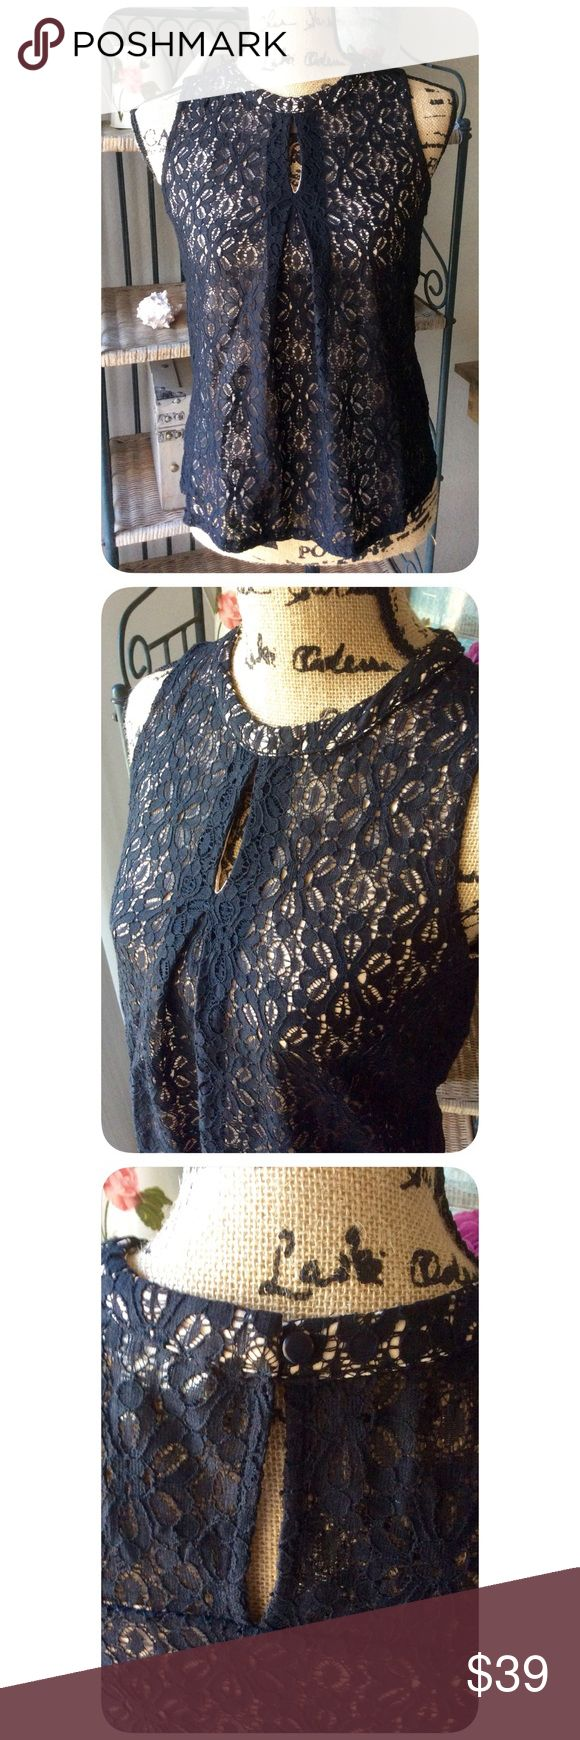 Black and Nude Crochet Style Top Love this top! Black and Nude Crochet Style Top. Shell is 67% Cotton, 33% Nylon. Lining is 100% polyester. Made in Vietnam. New without tags. Different sizes in stock! Monteau Tops